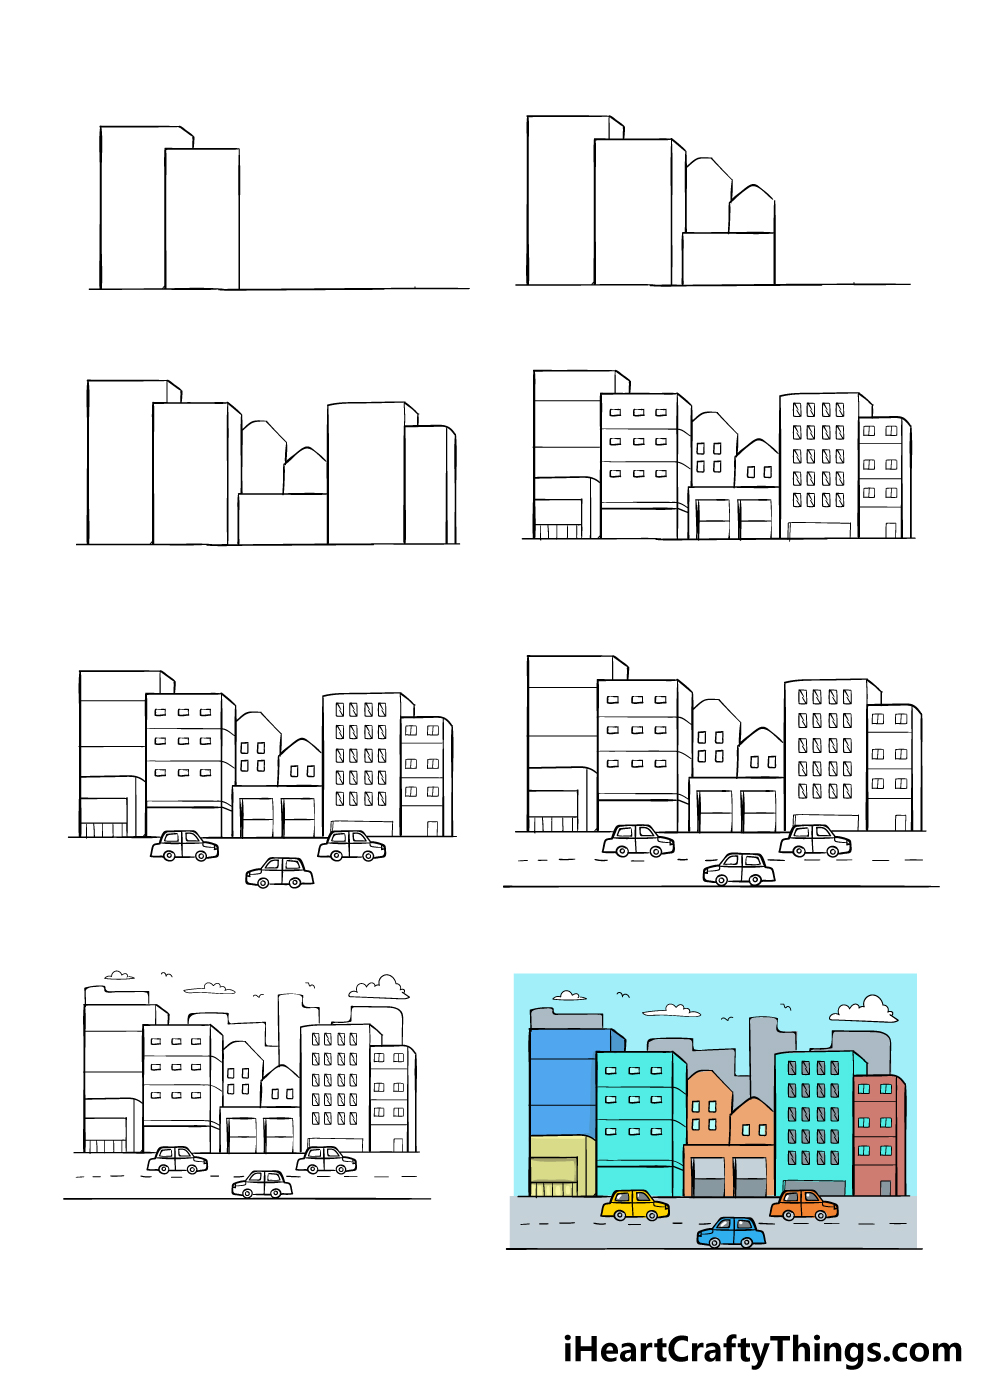 how to draw a city in 8 steps